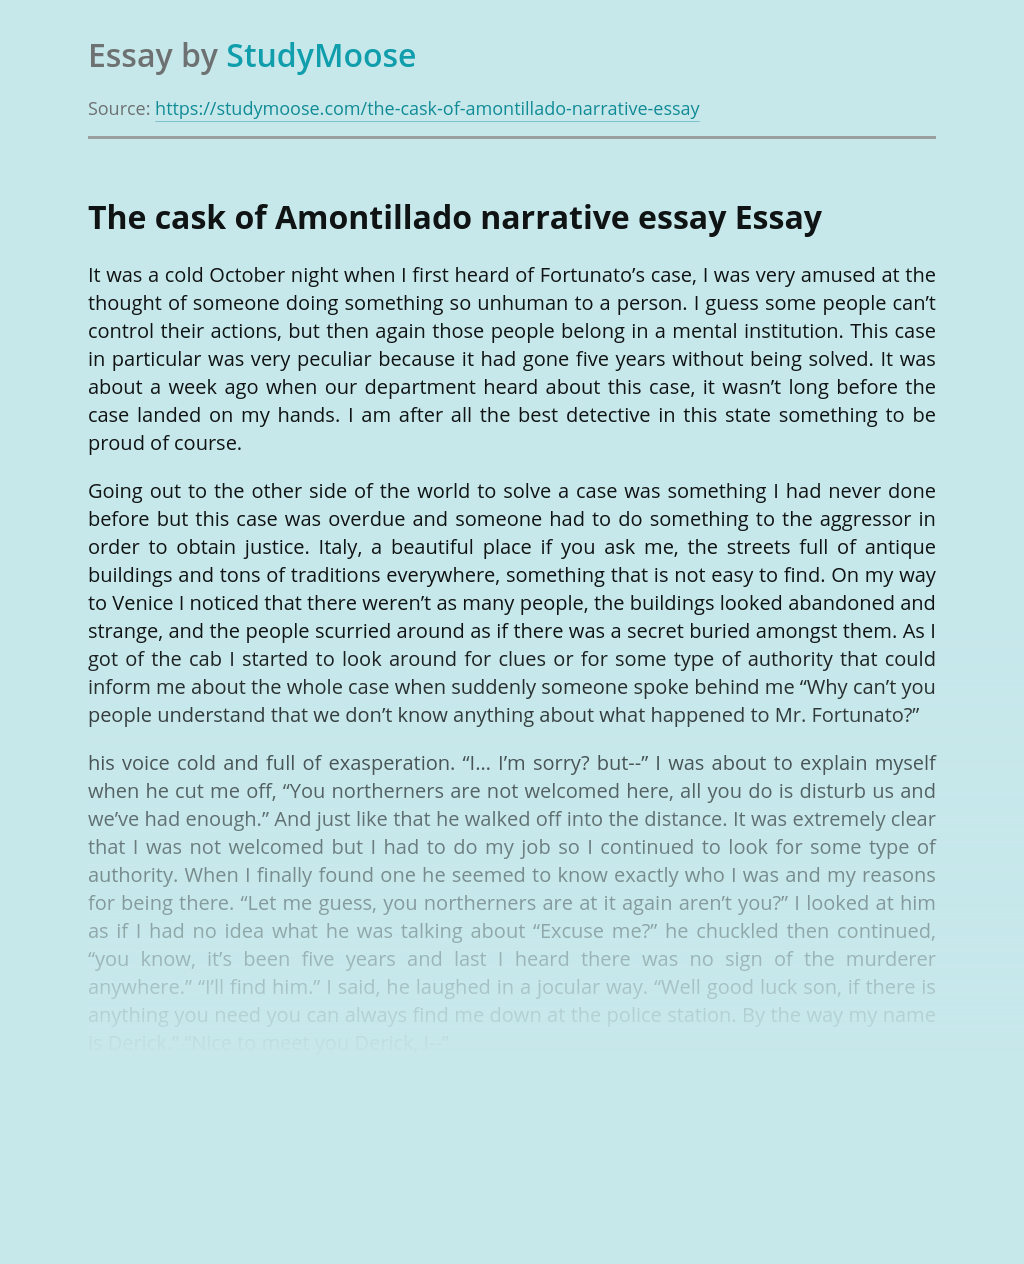 The cask of Amontillado narrative essay